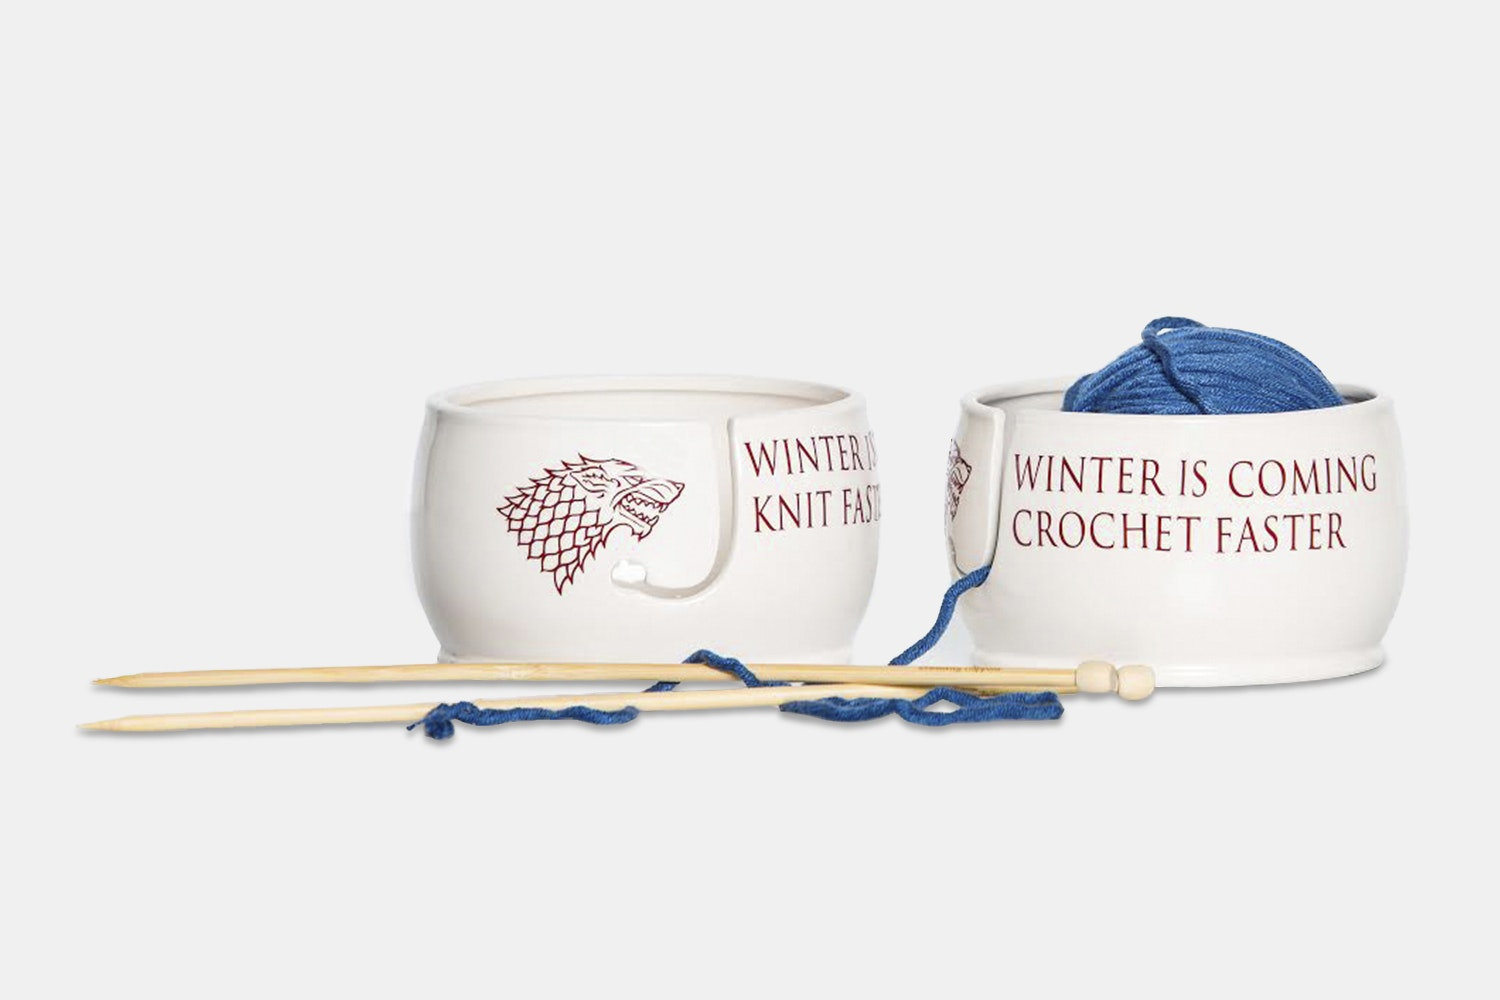 Game of Thrones Ceramic Yarn Bowl